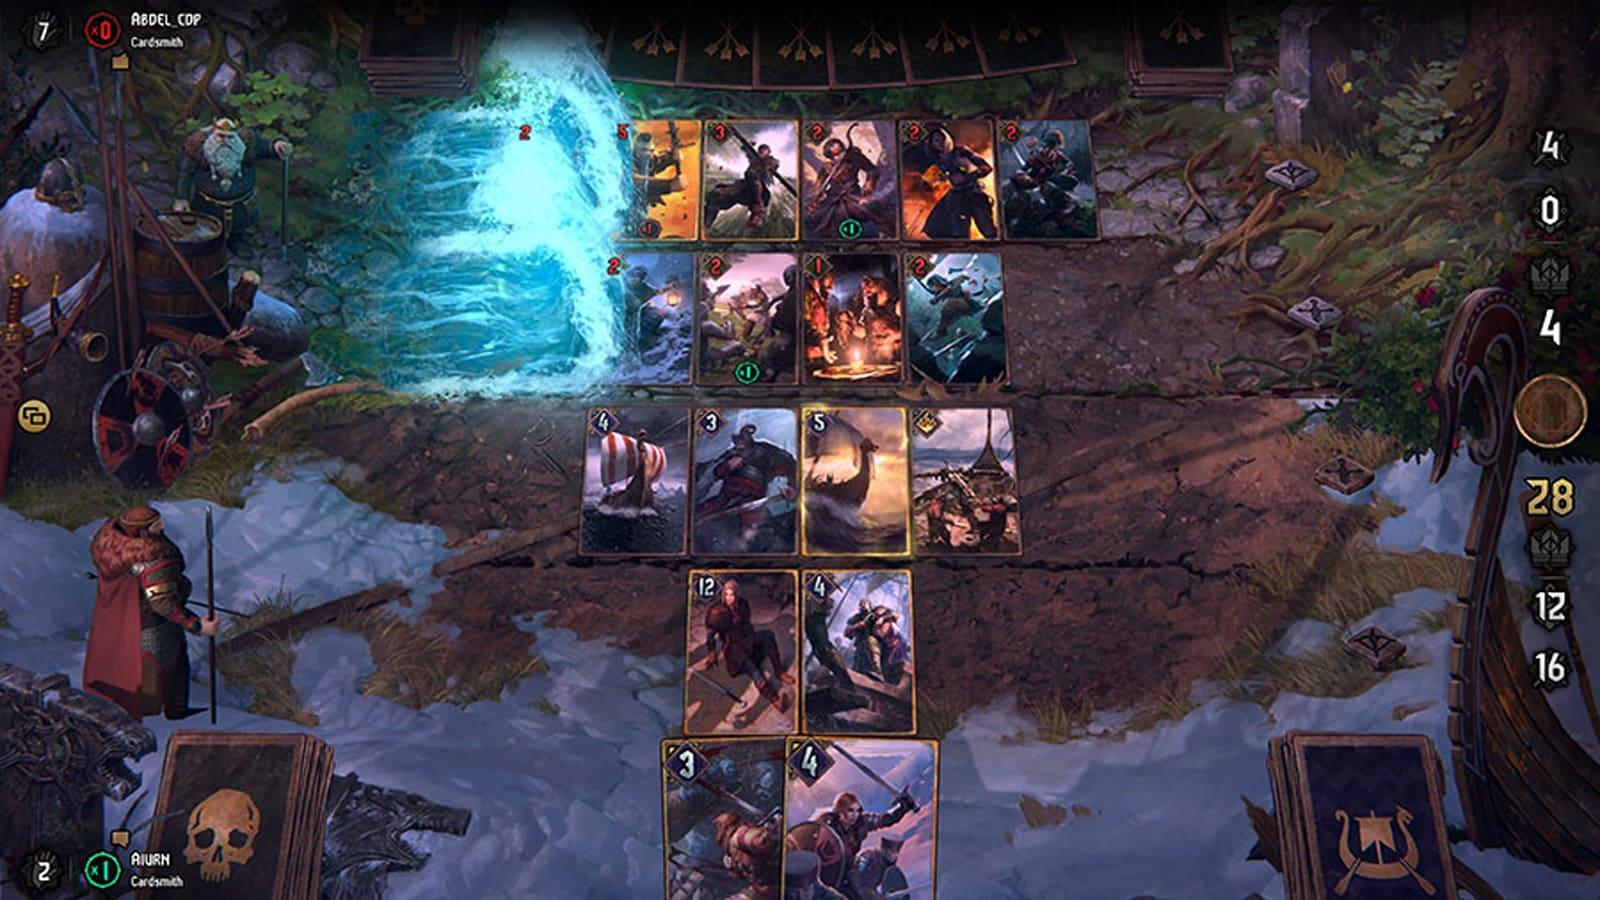 Witcher card game 'Gwent' is shutting down on consoles